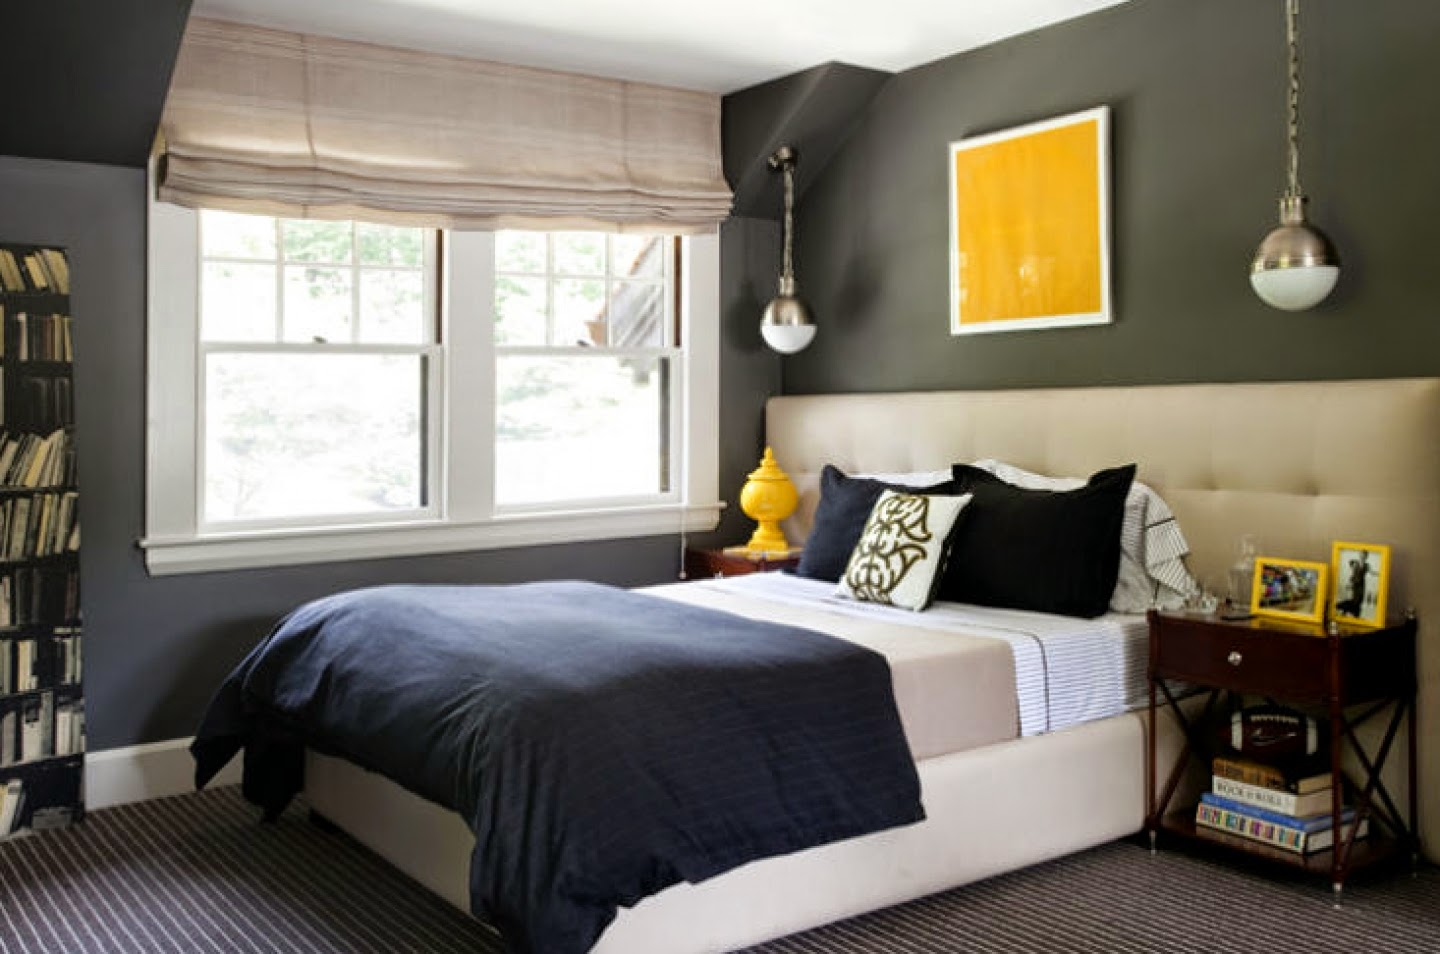 Bedroom Inspiration Grey Bed Ideas How To Create A Nice Design For Your Home Using Grey